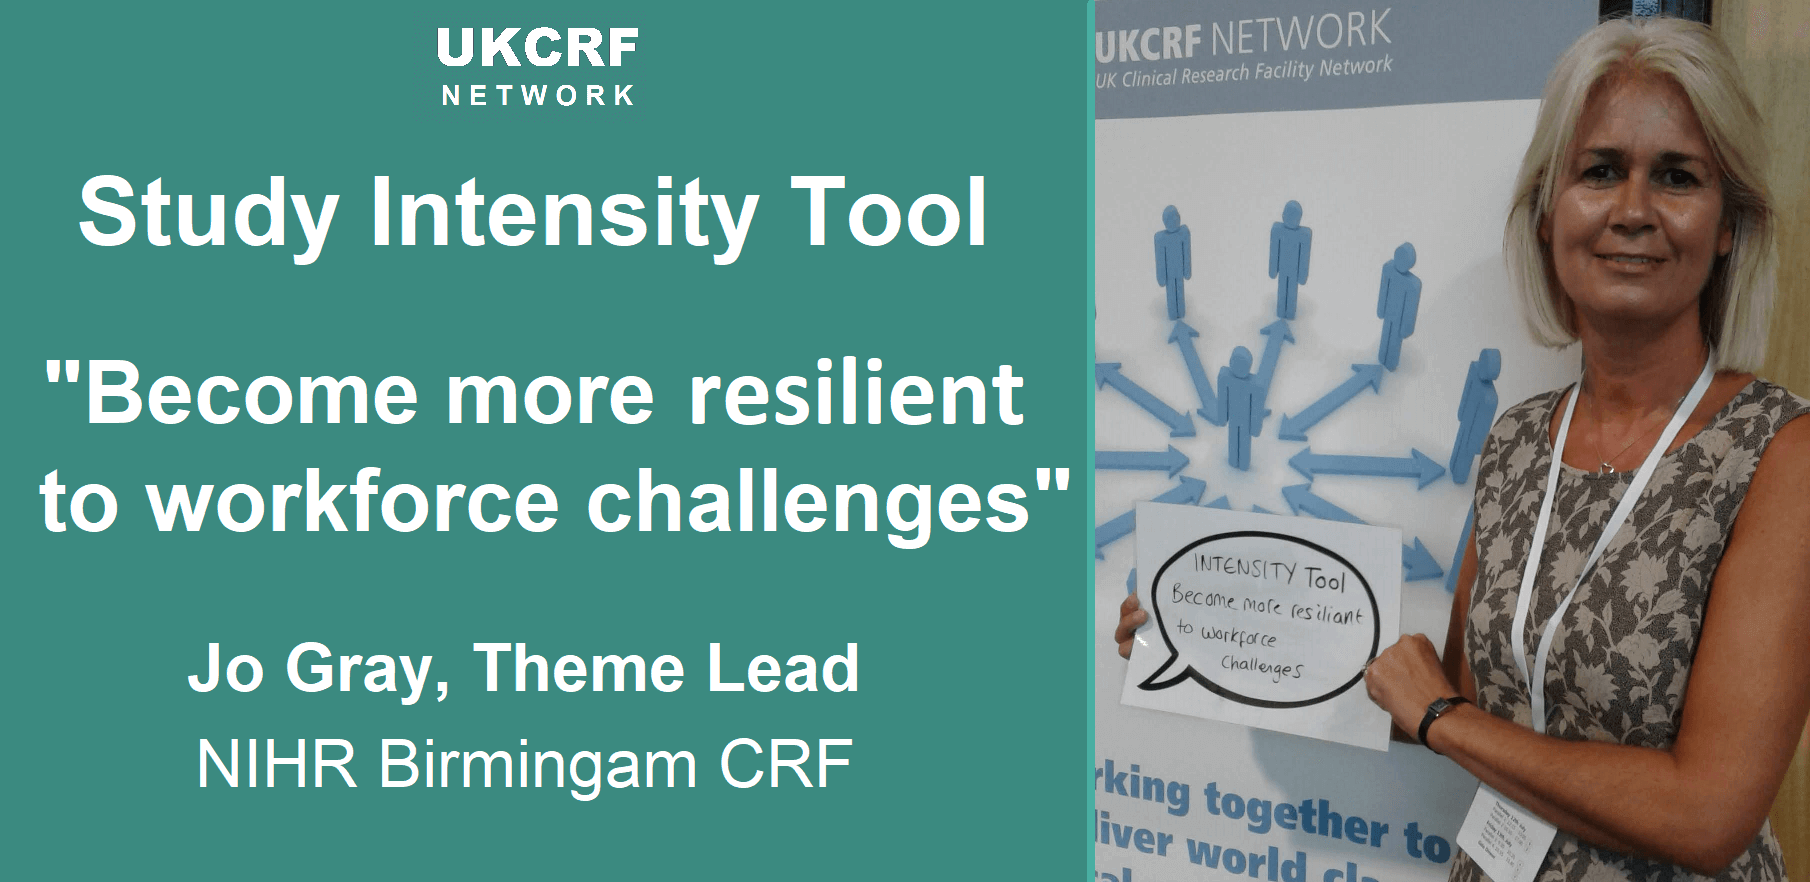 Study Intensity Tool; Become more resilient to workforce challenges